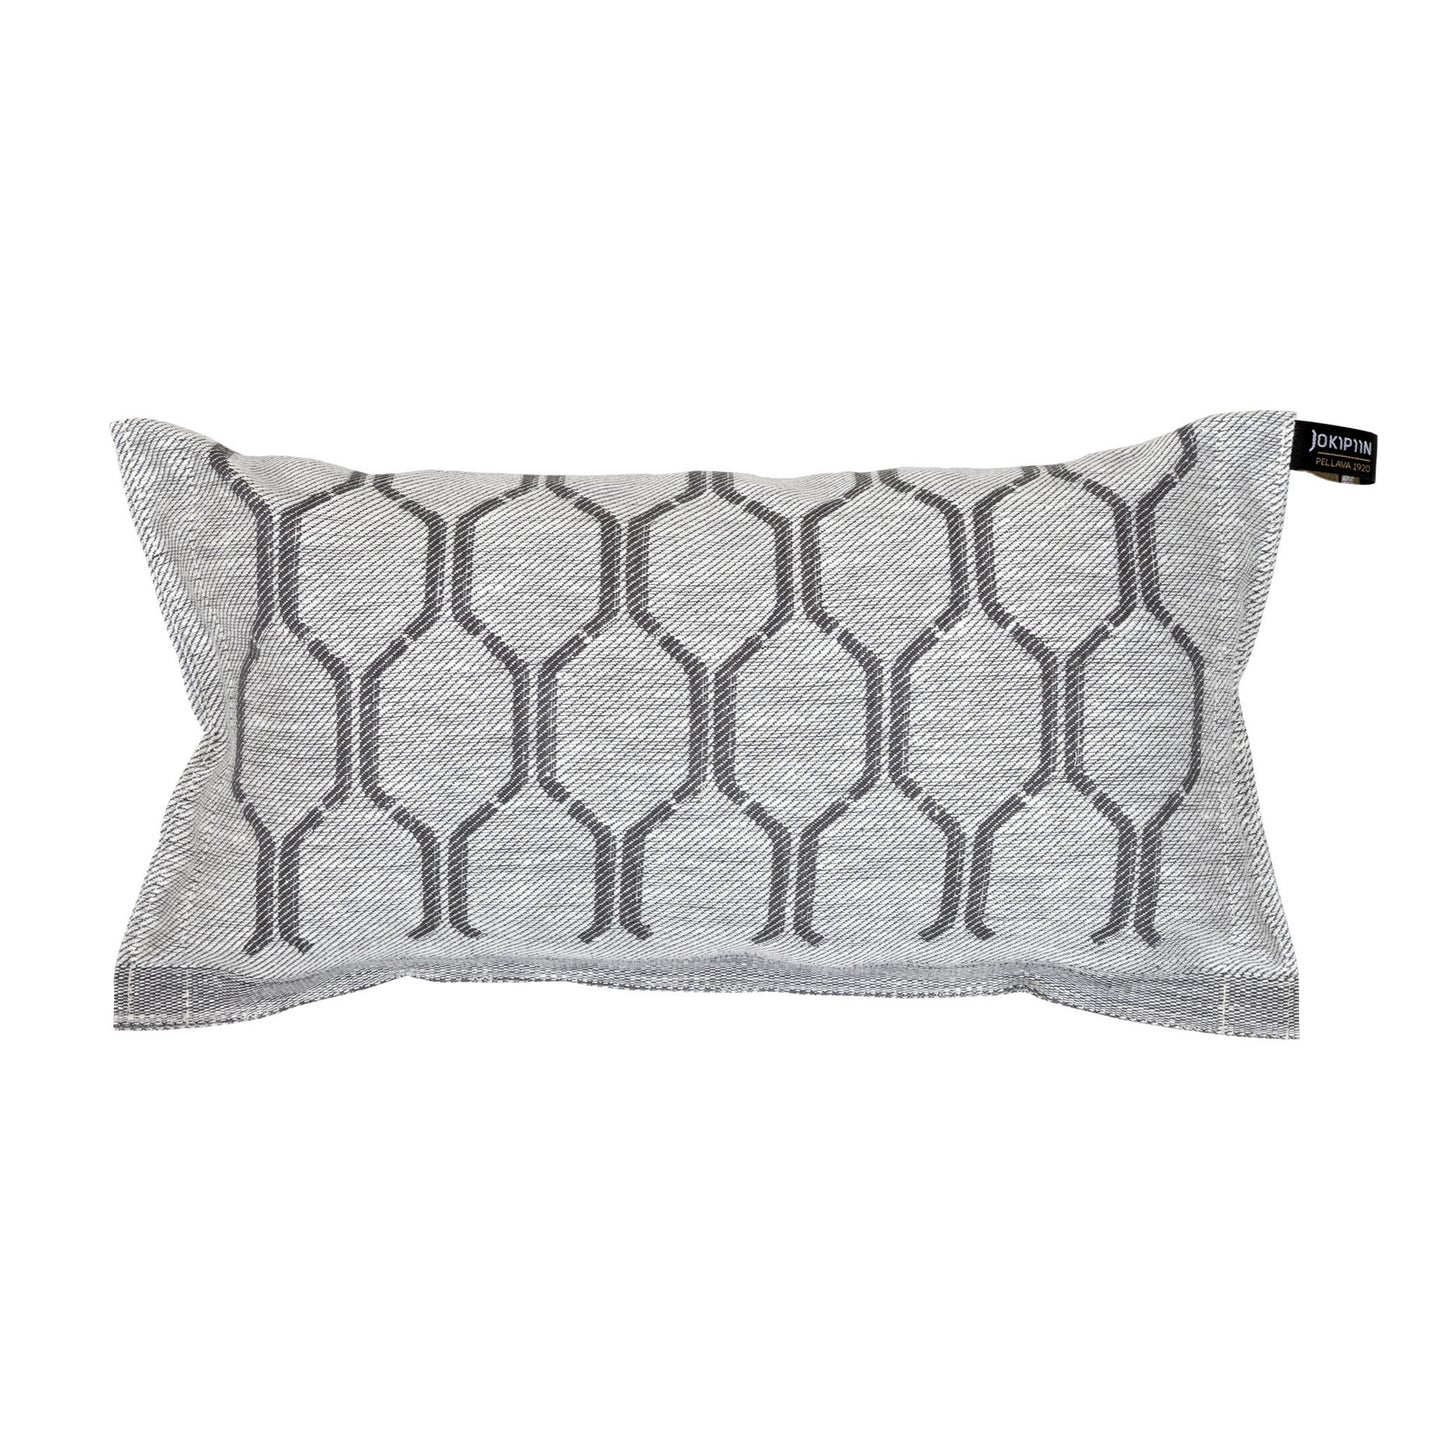 Sauna Pillow Nimikko Collection by Jokipiin Pellava White/Dark Grey  Sauna Pillow Finnmark Sauna